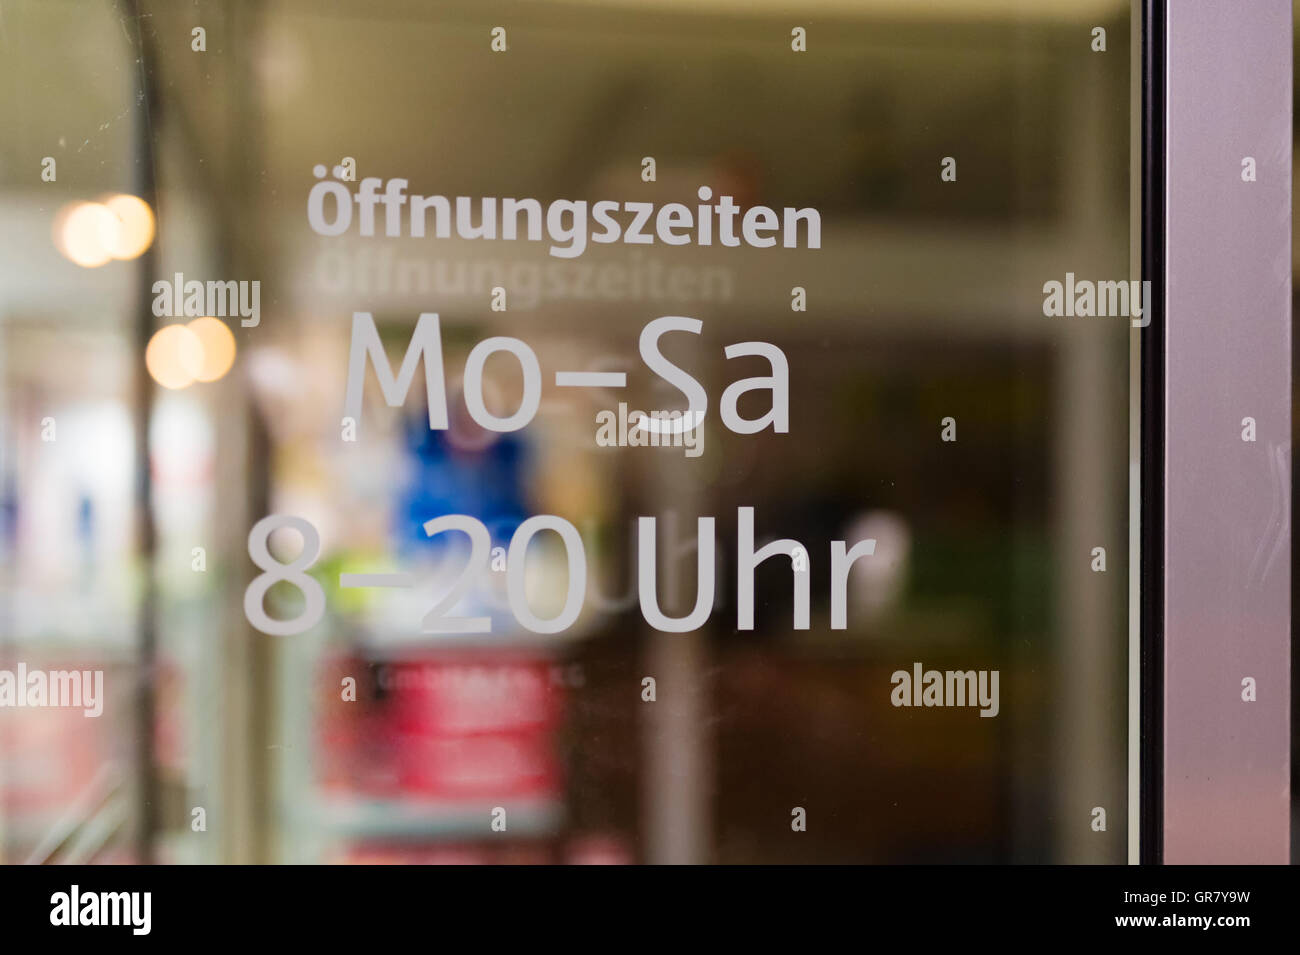 With The Opening Times Labeled Glass Door Of A Shop. - Stock Image